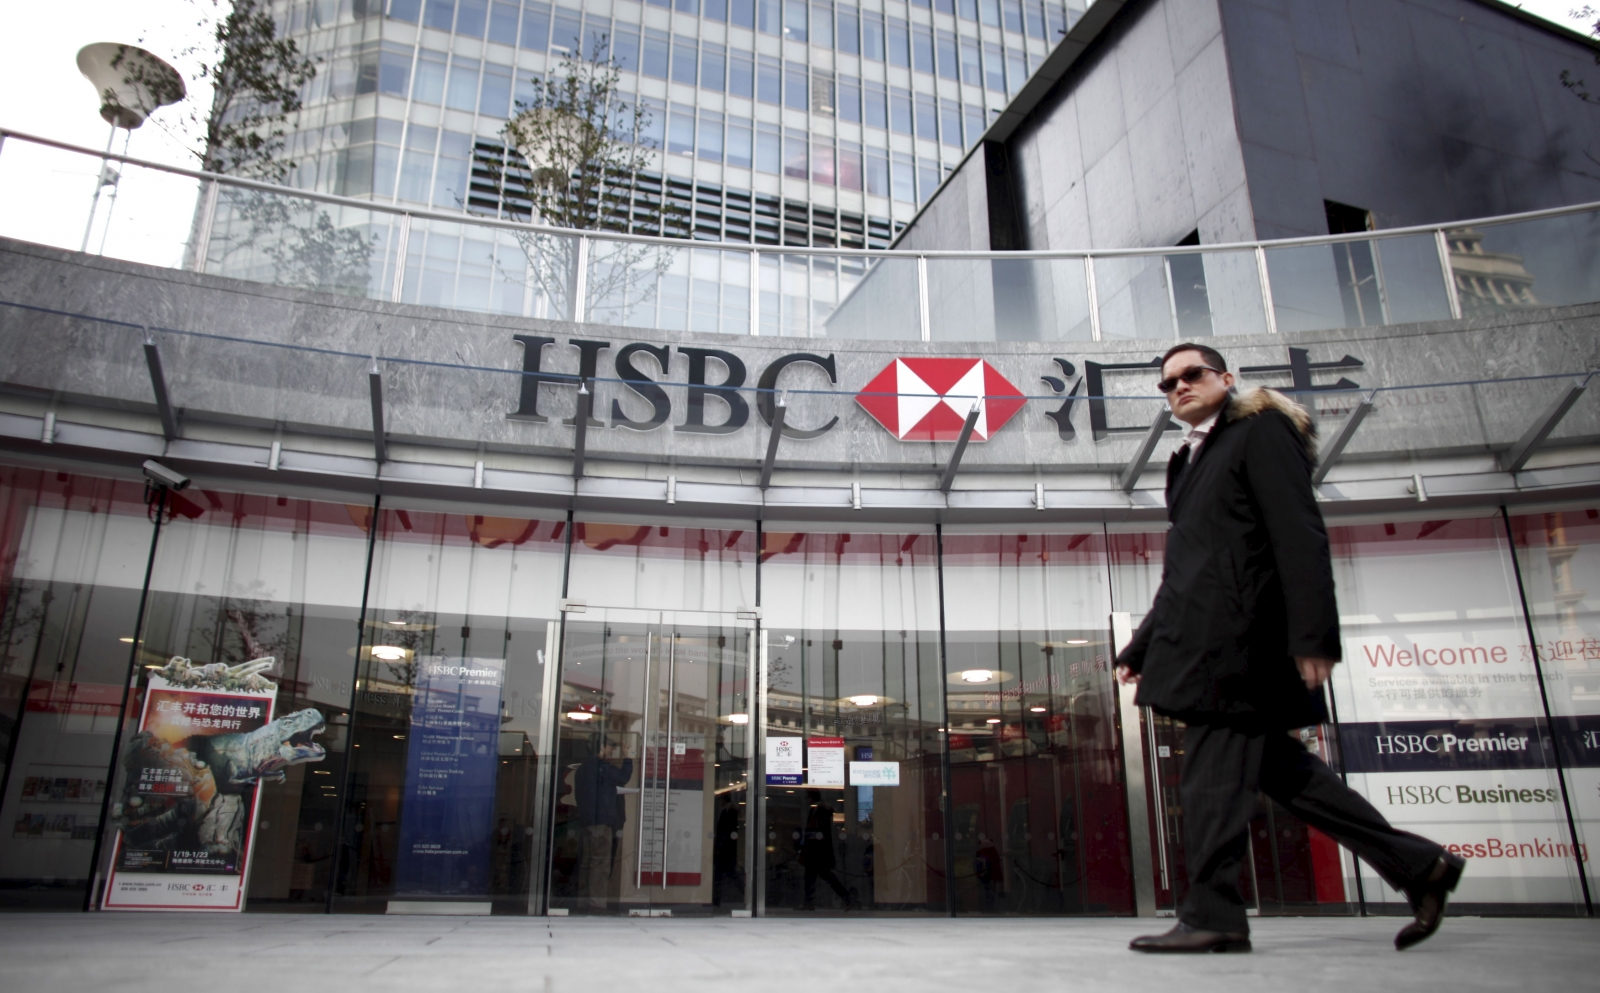 HSBC voice recognition security system duped by customer's